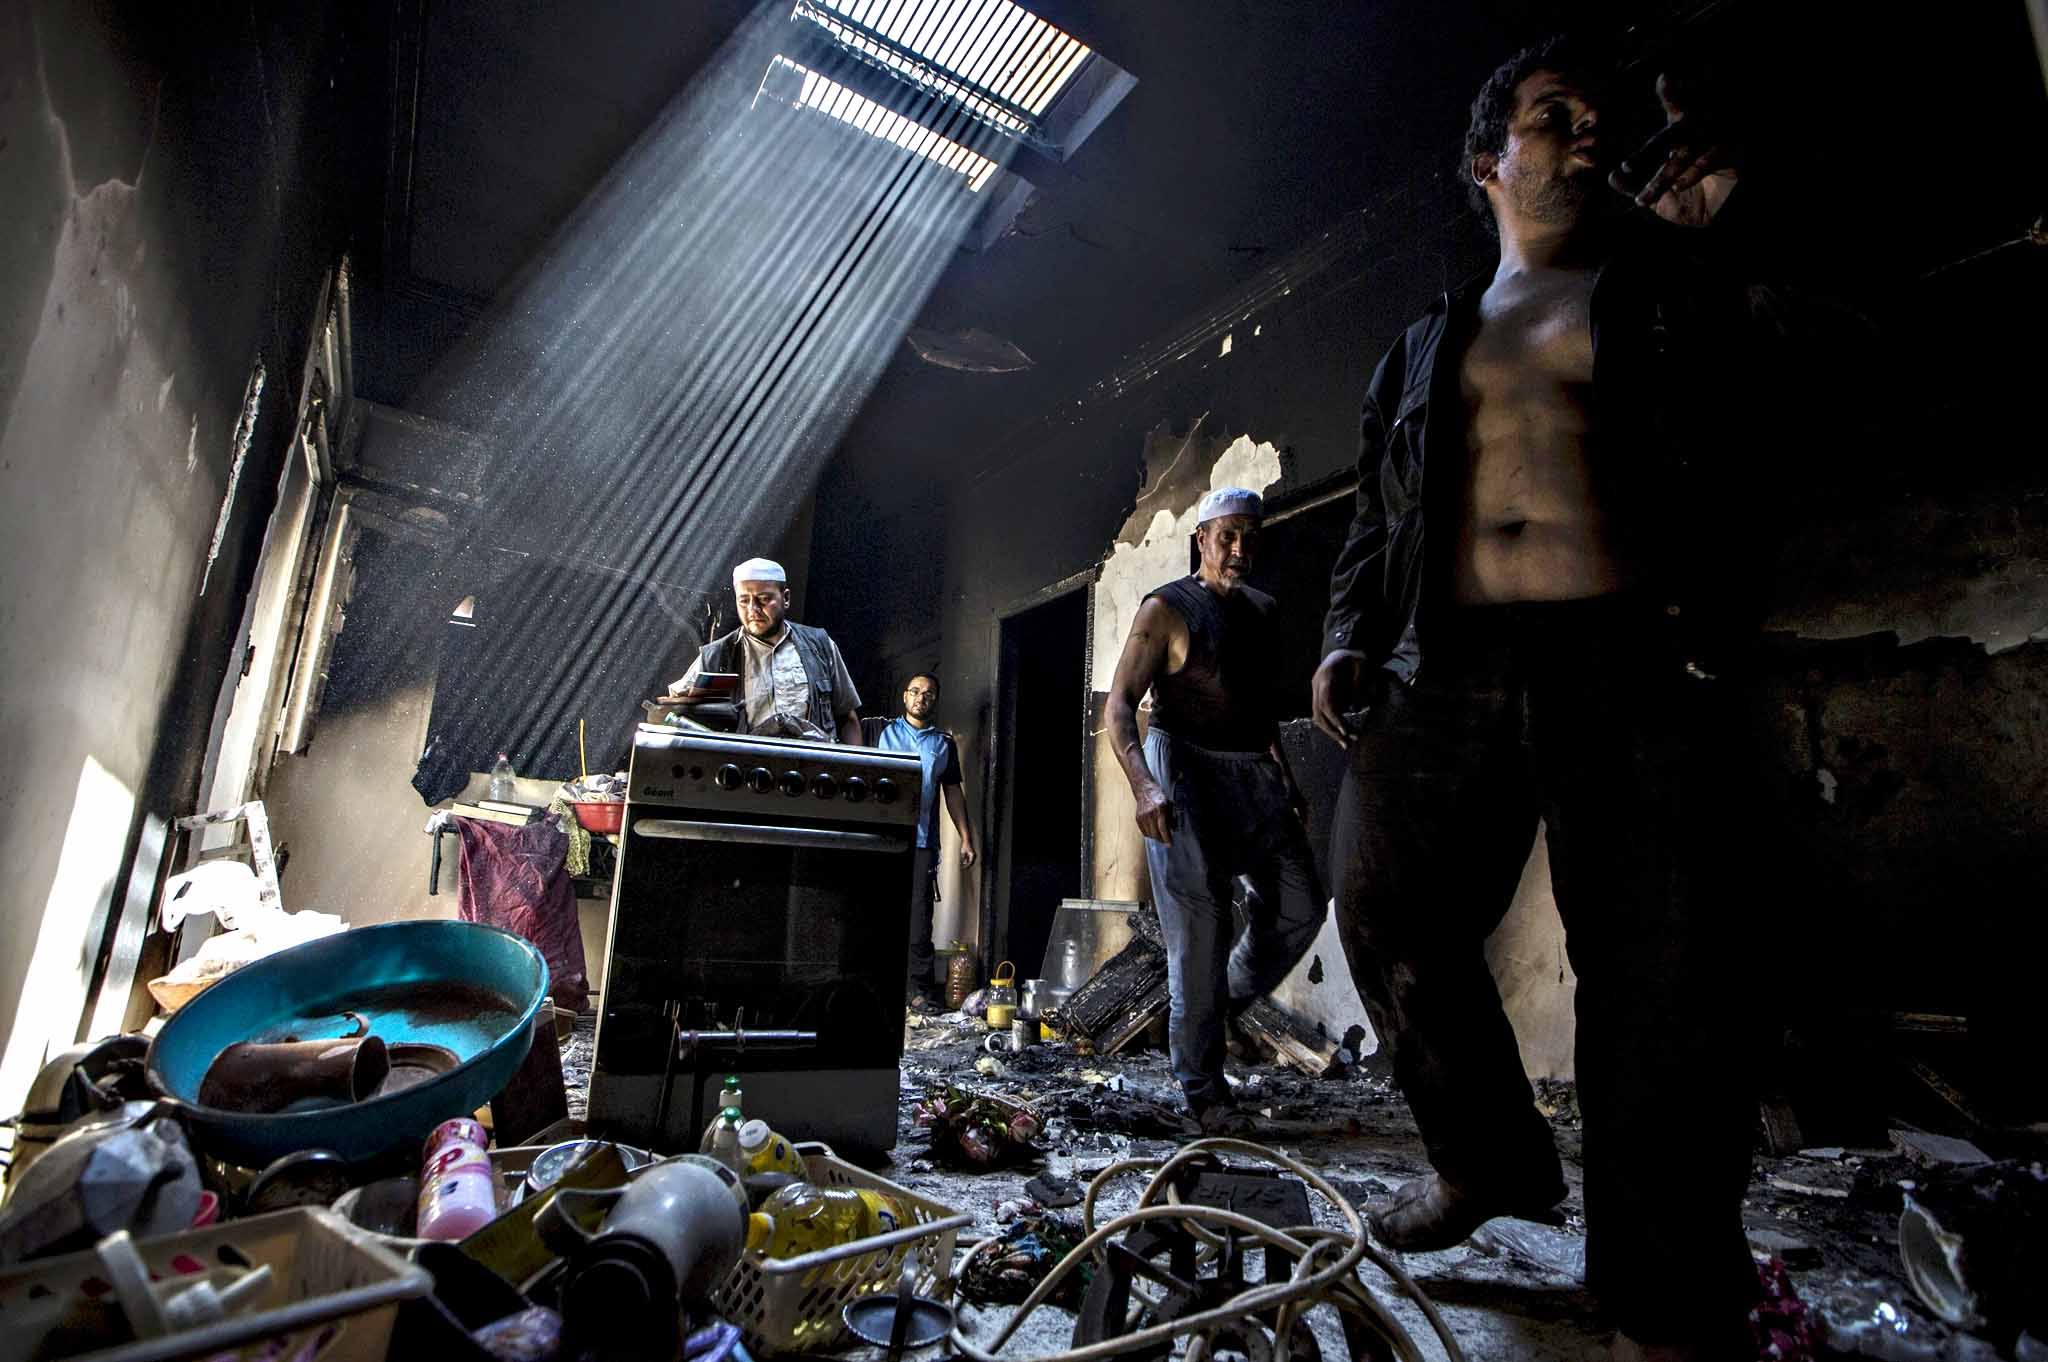 Mozabite Berbers salvage their belongings at a damaged house after clashes between Arabs and Mozabits in Guerrara near Ghardaia, Algeria July 9, 2015. At least 22 people have been killed in ethnic clashes between Arab and Amazigh communities around the Algerian desert town of Ghardaia, with several businesses and homes burned down, medical sources and state media said on Wednesday. The violence that erupted over the weekend was some of the worst in years in the flashpoint region where tensions often run high between Arabs and Mozabite Berbers - one of the Amazigh people of North Africa - competing for jobs, houses and land